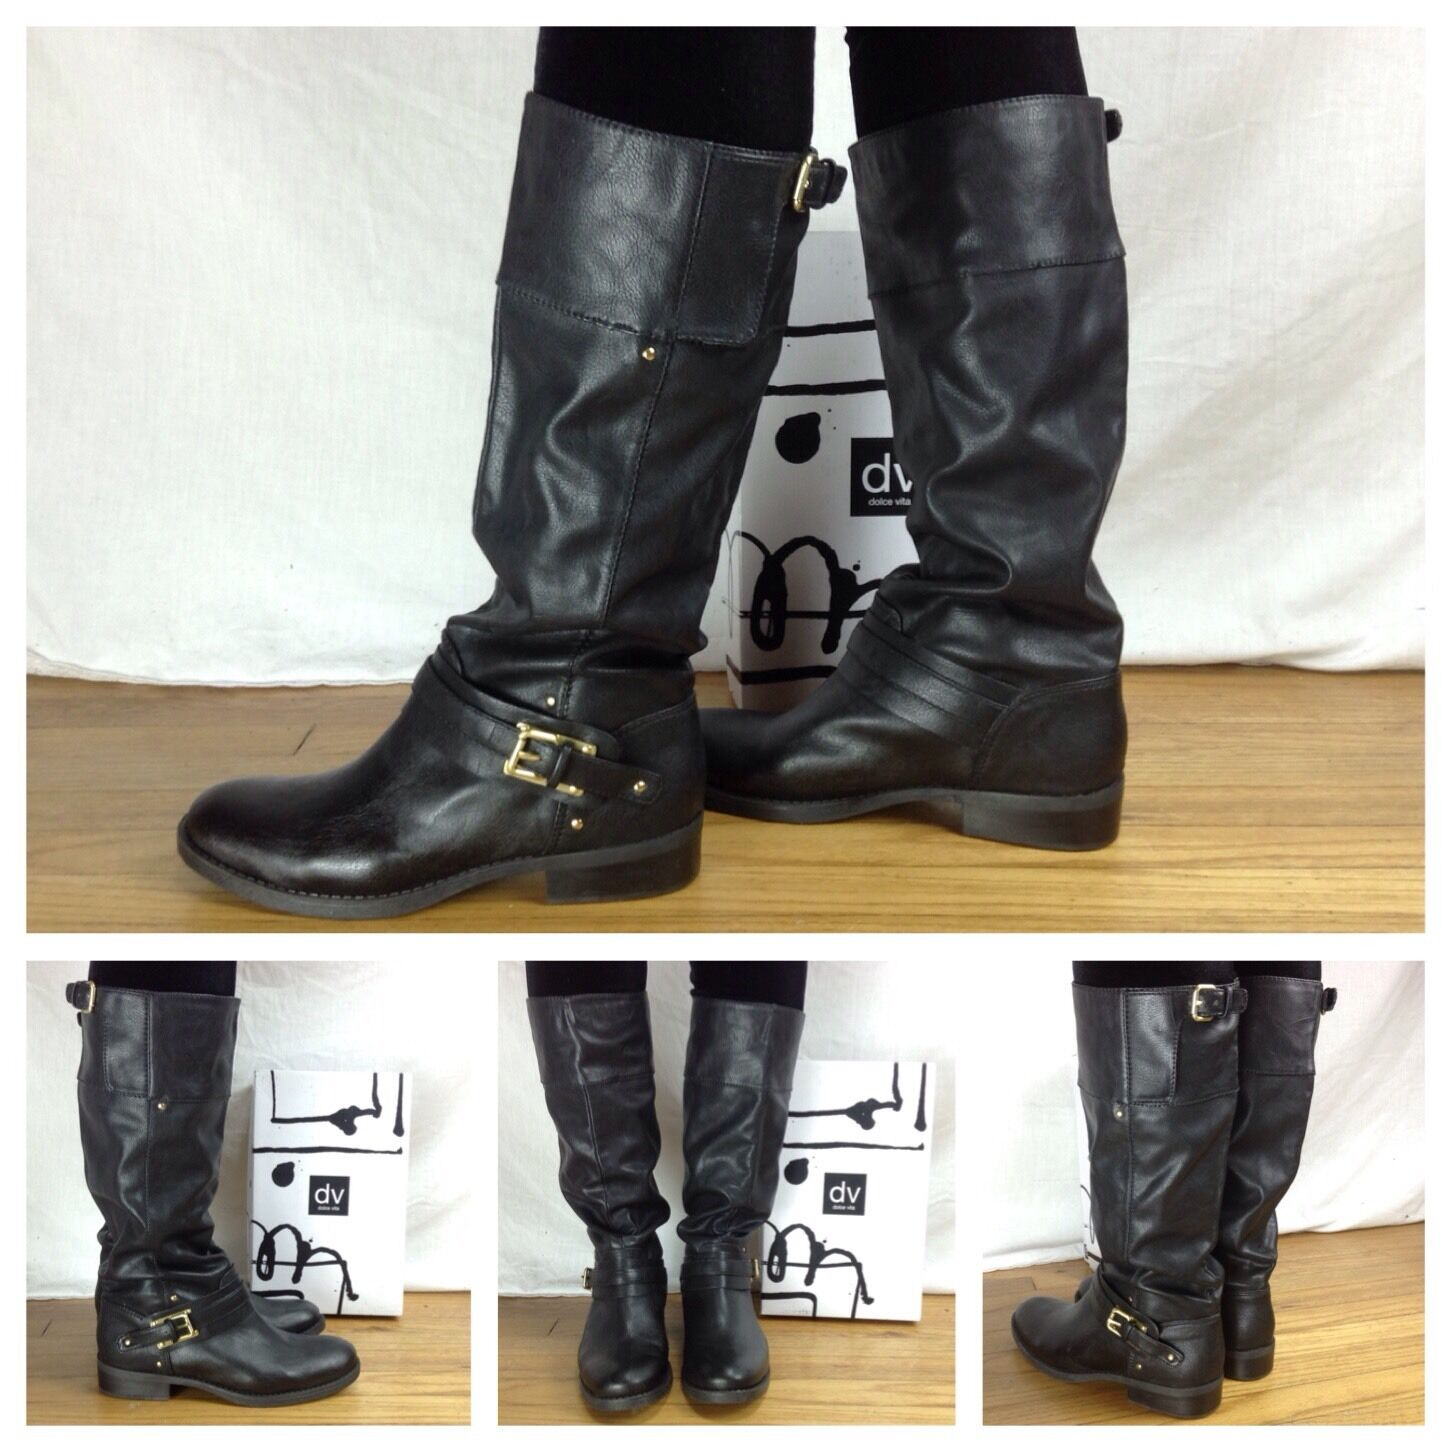 Dolce Vita New Sexy Lasso Black Buckle Tall Knee High Riding Boots Size 7.5 $129